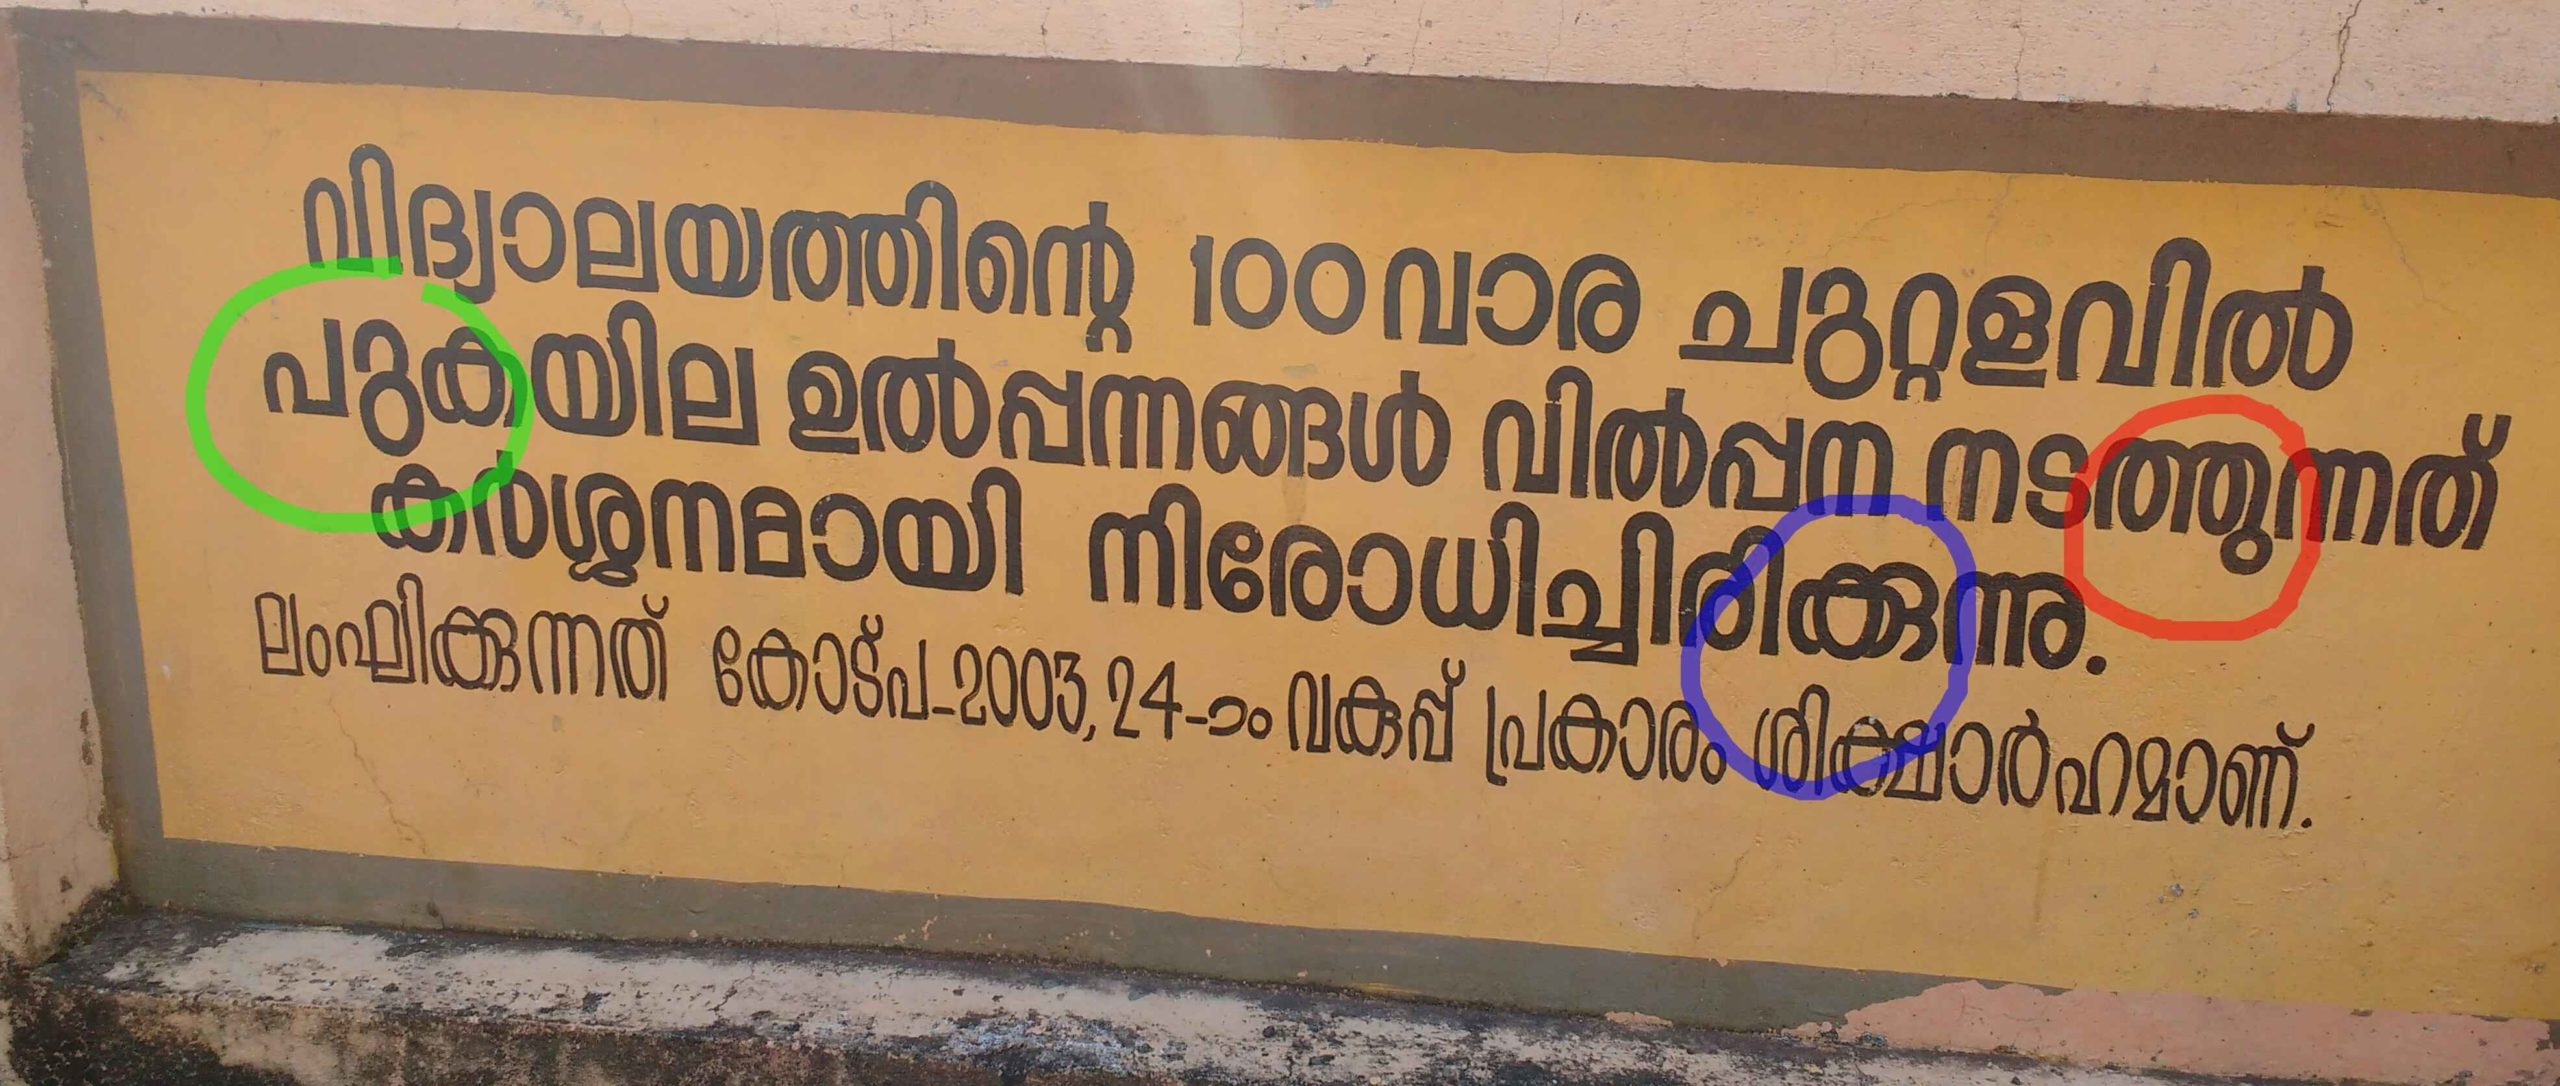 The image of a wall writing in Malayalam. The usage of reformed and traditional orthography with detatched and attached u-signs respectively can be seen. The wrongly used attached u-sign is also shown.